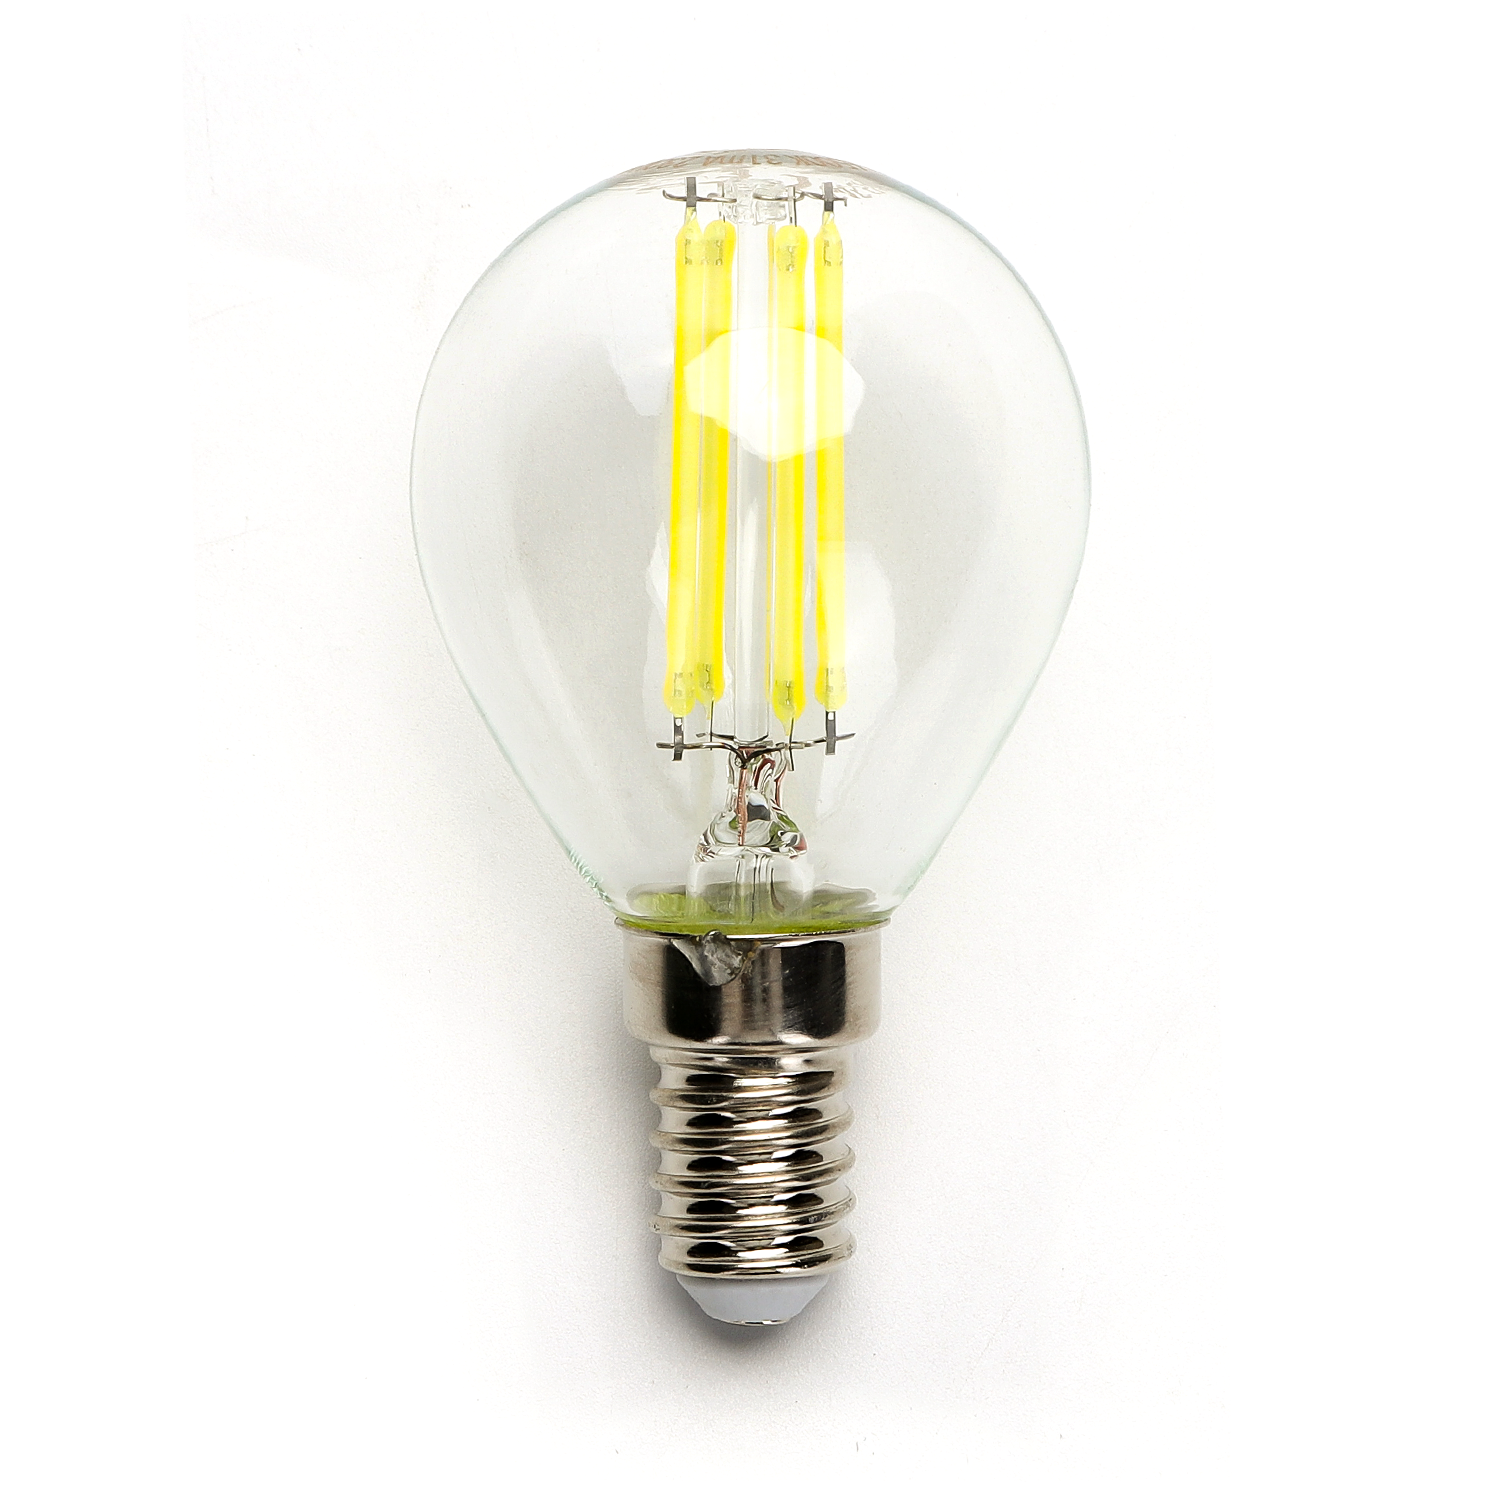 Filament LED Lamp 4 Watt kleine fitting E14 G45 4500K Naturel wit